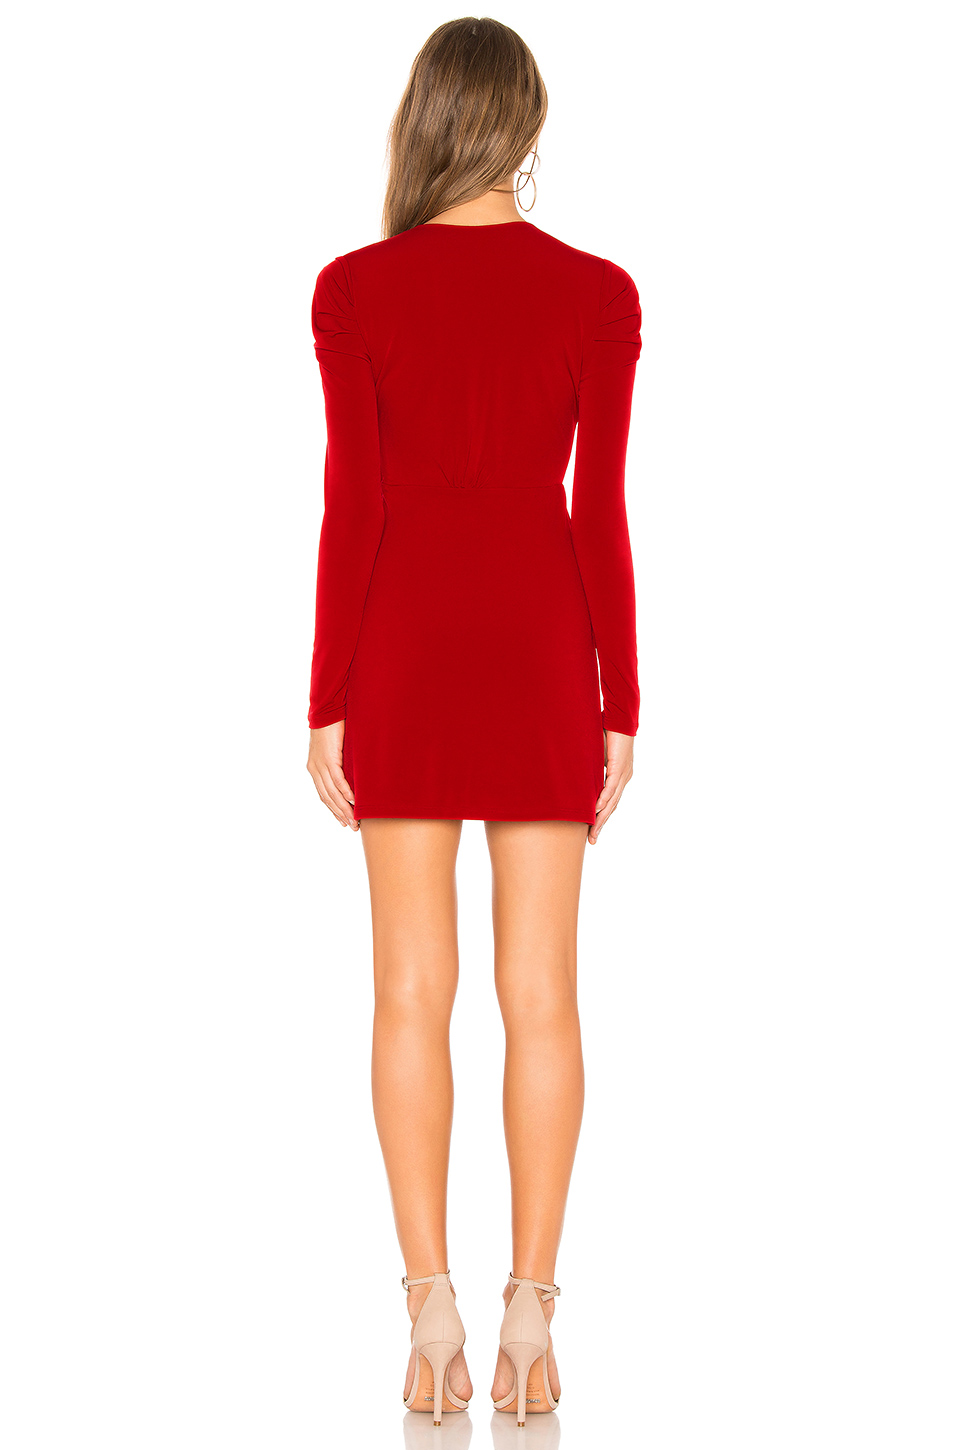 Privacy Please Noah Mini Dress